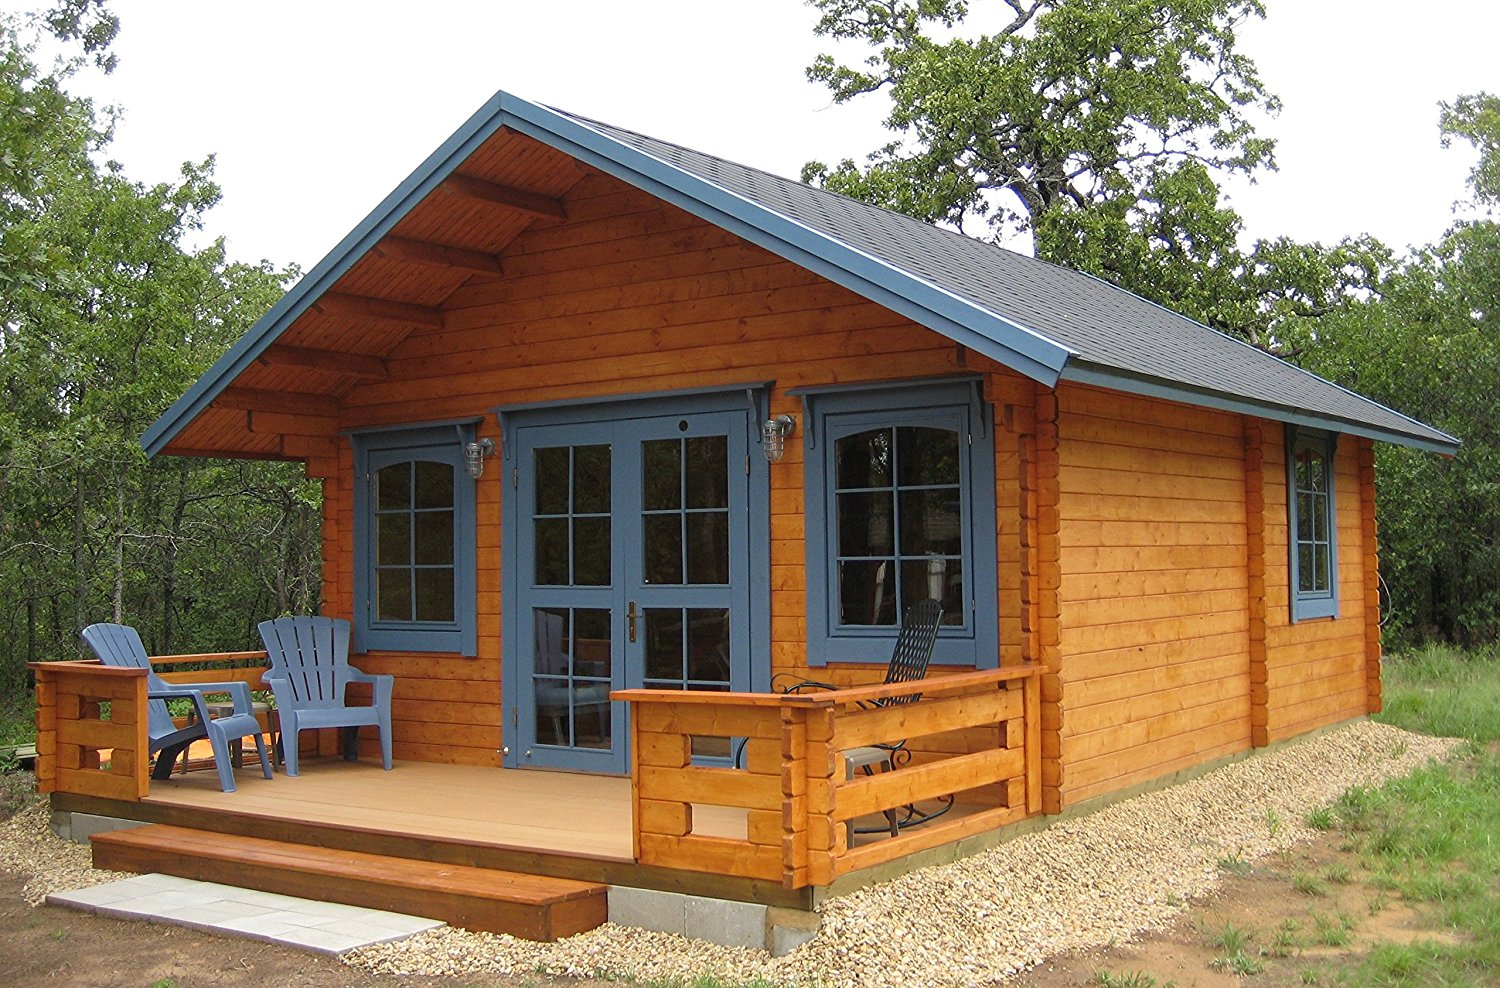 The Best Tiny Houses Available on Amazon: Wood cabin with a loft